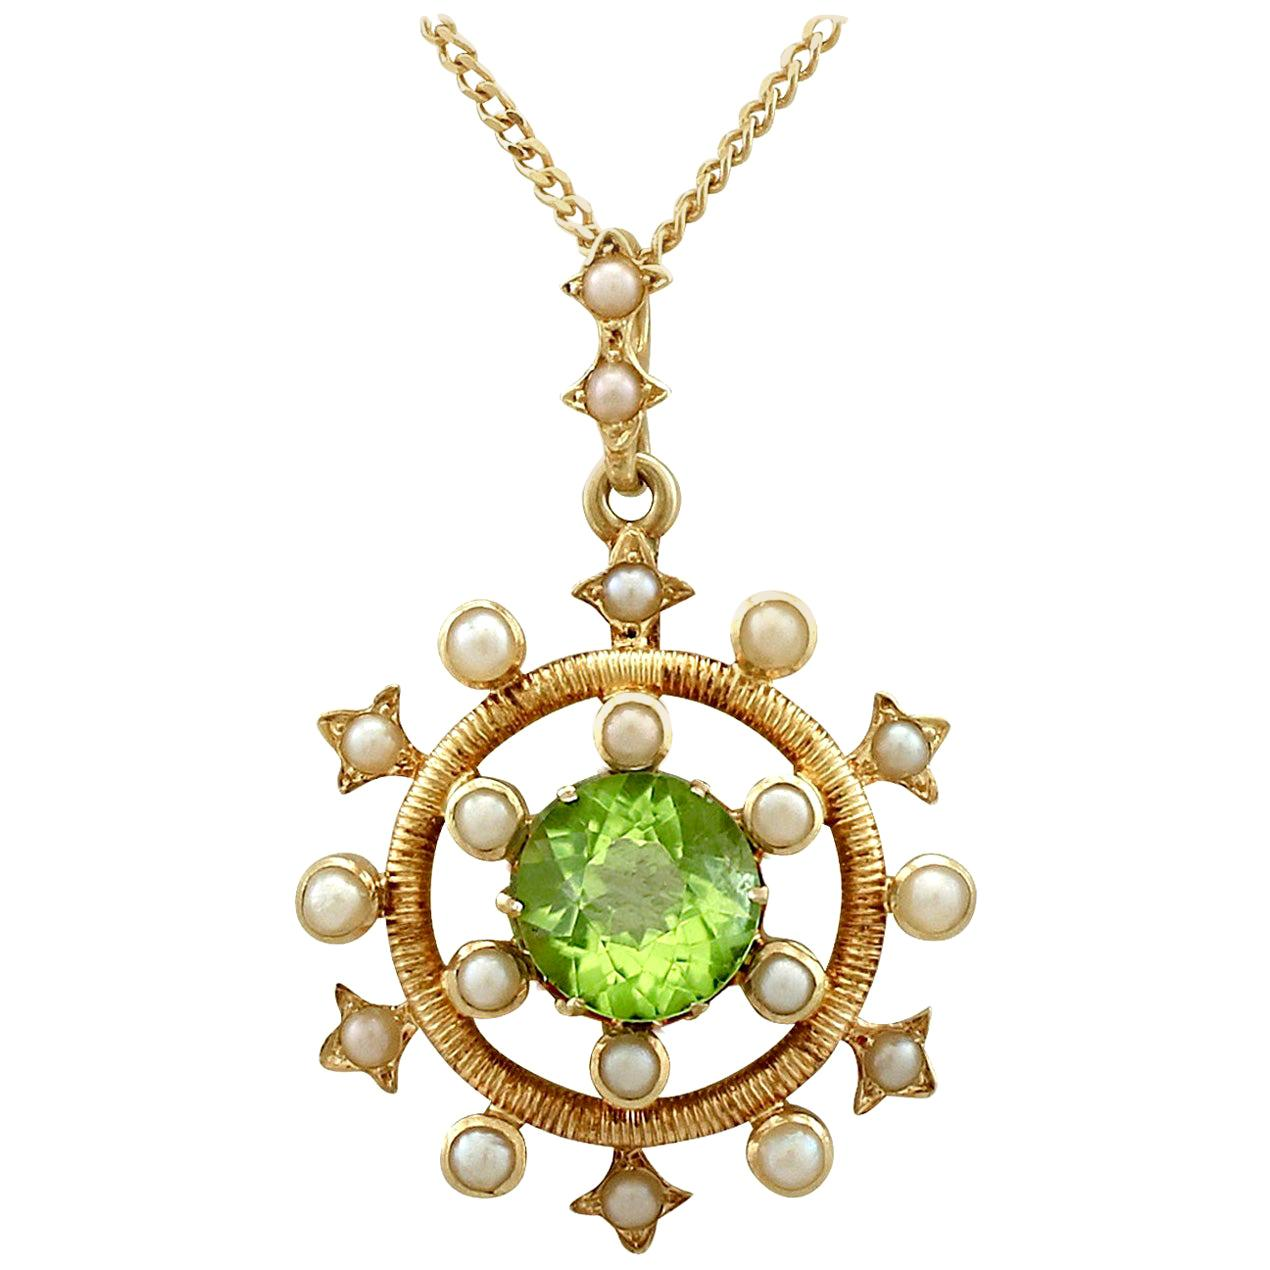 1900s Antique 1.92 Carat Peridot and Seed Pearl Yellow Gold Pendant